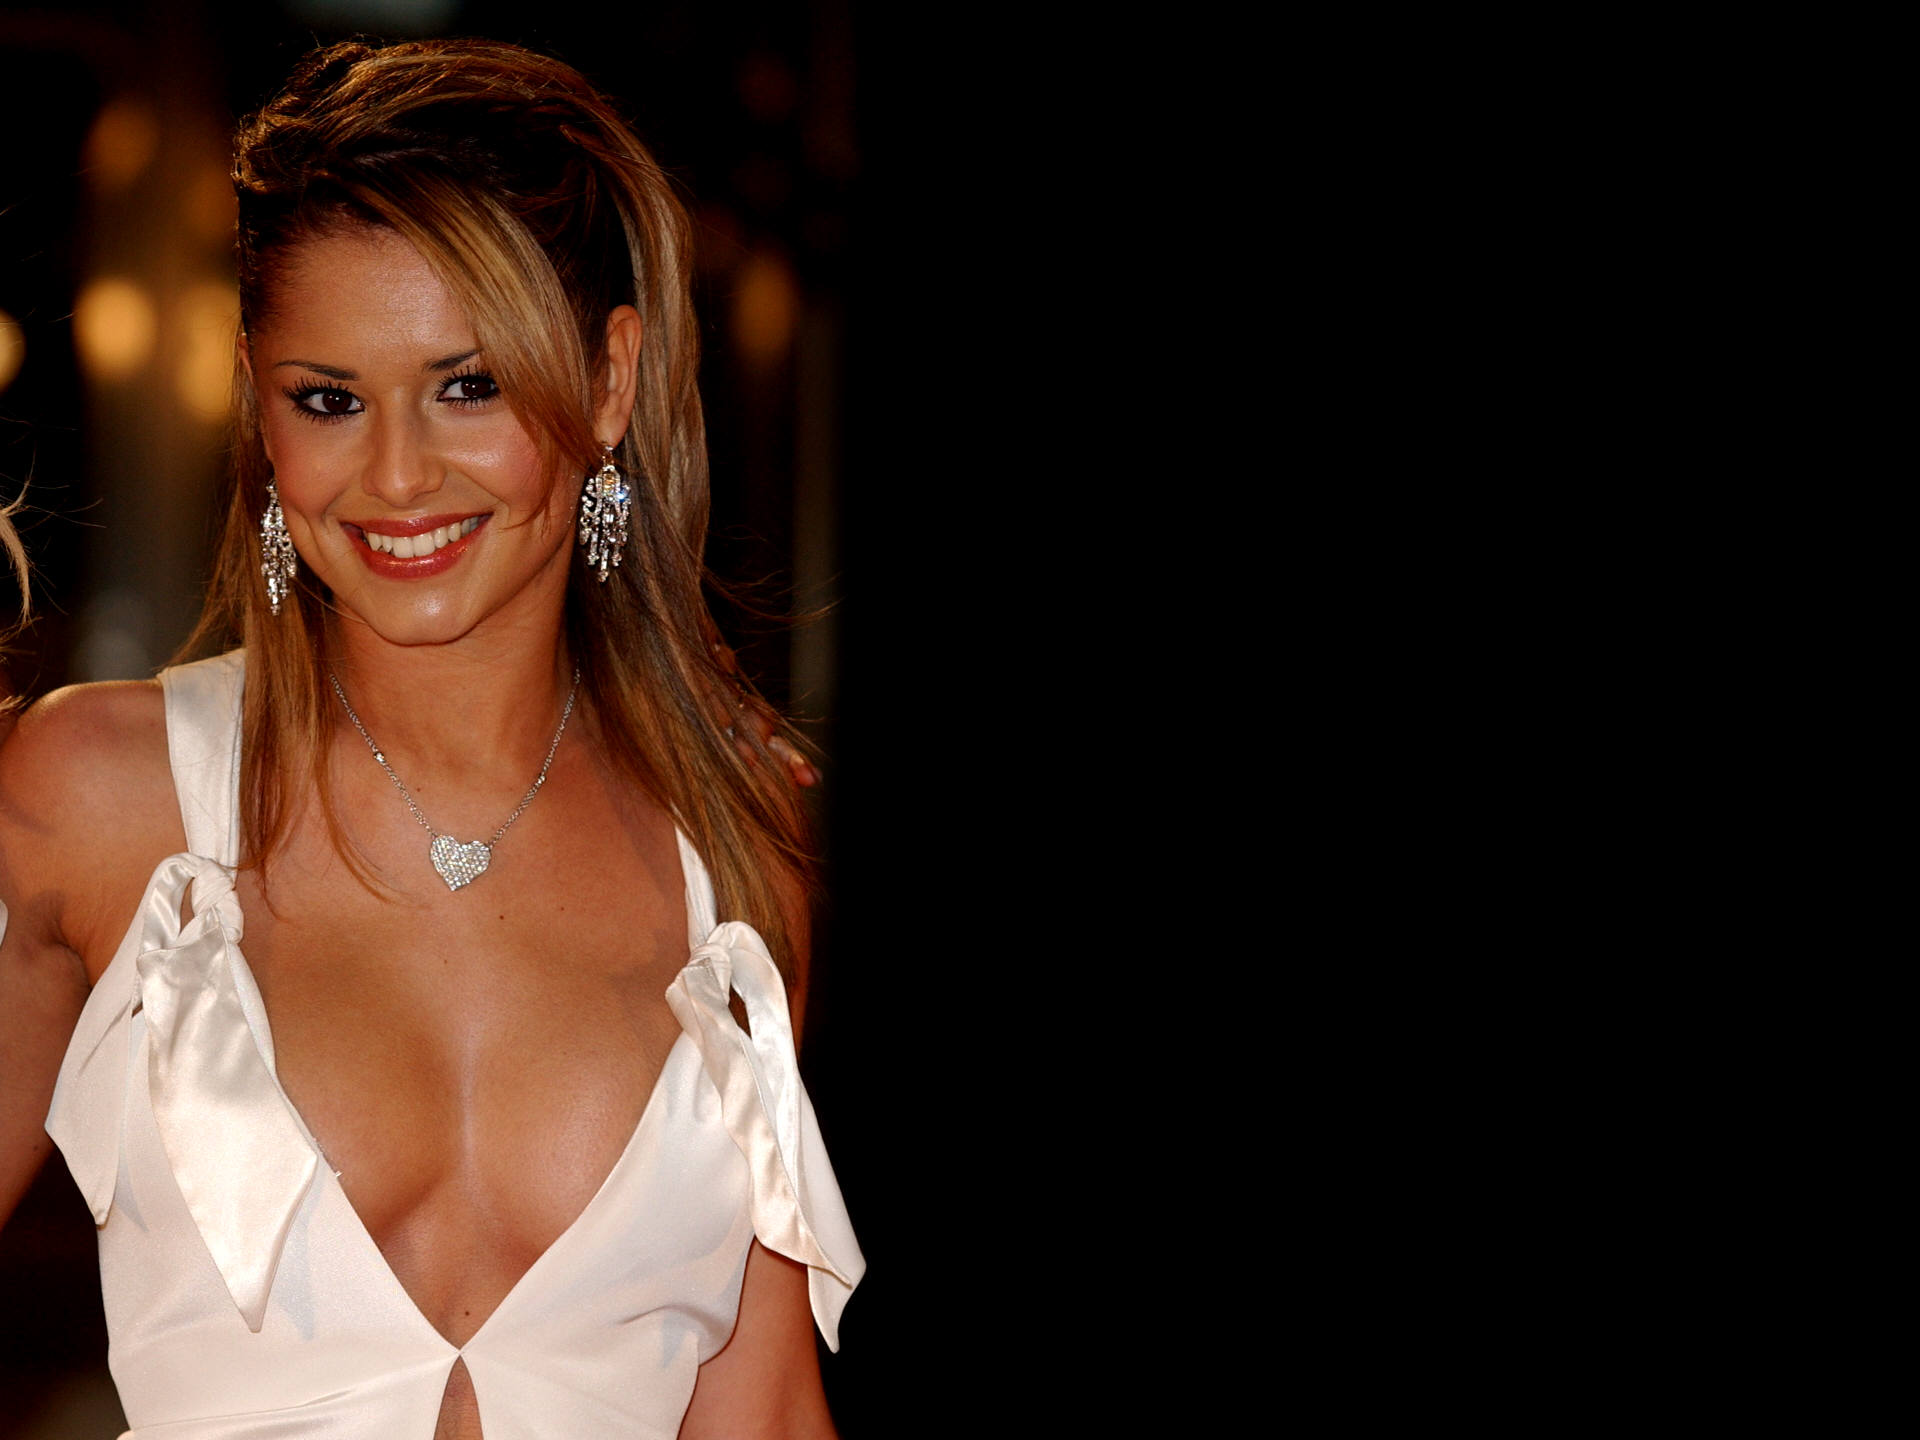 Cheryl Cole cleavage wallpaper: Close up of Cheryl and her cleavage on ...